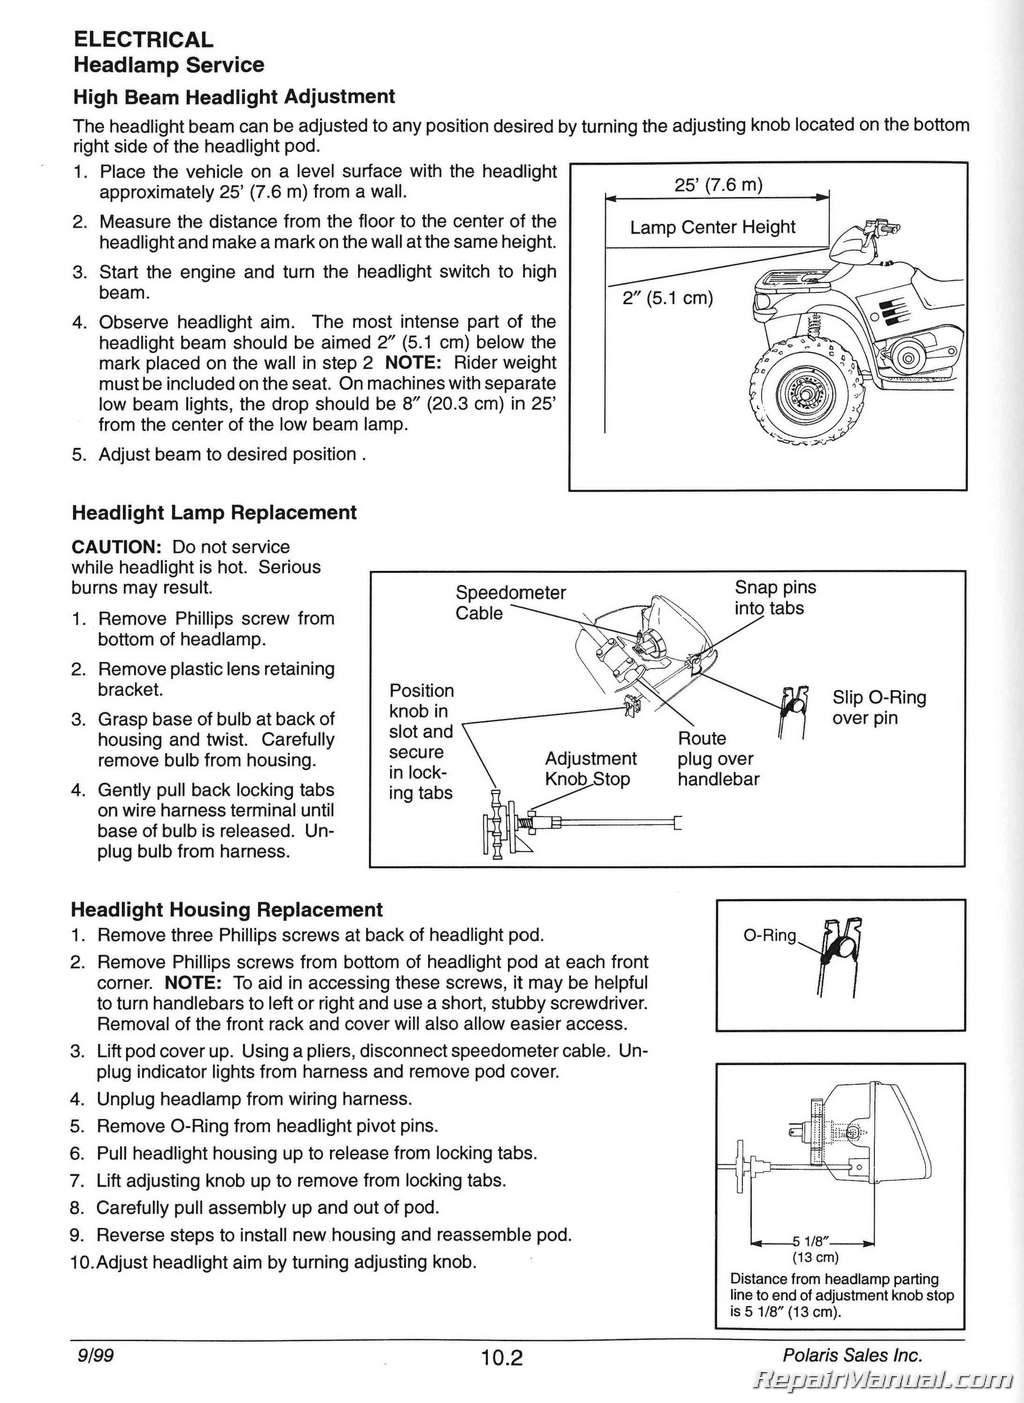 polaris sportsman atv service manual repair 1996 2000 polaris sportsman 335 500 atv service manual page 3